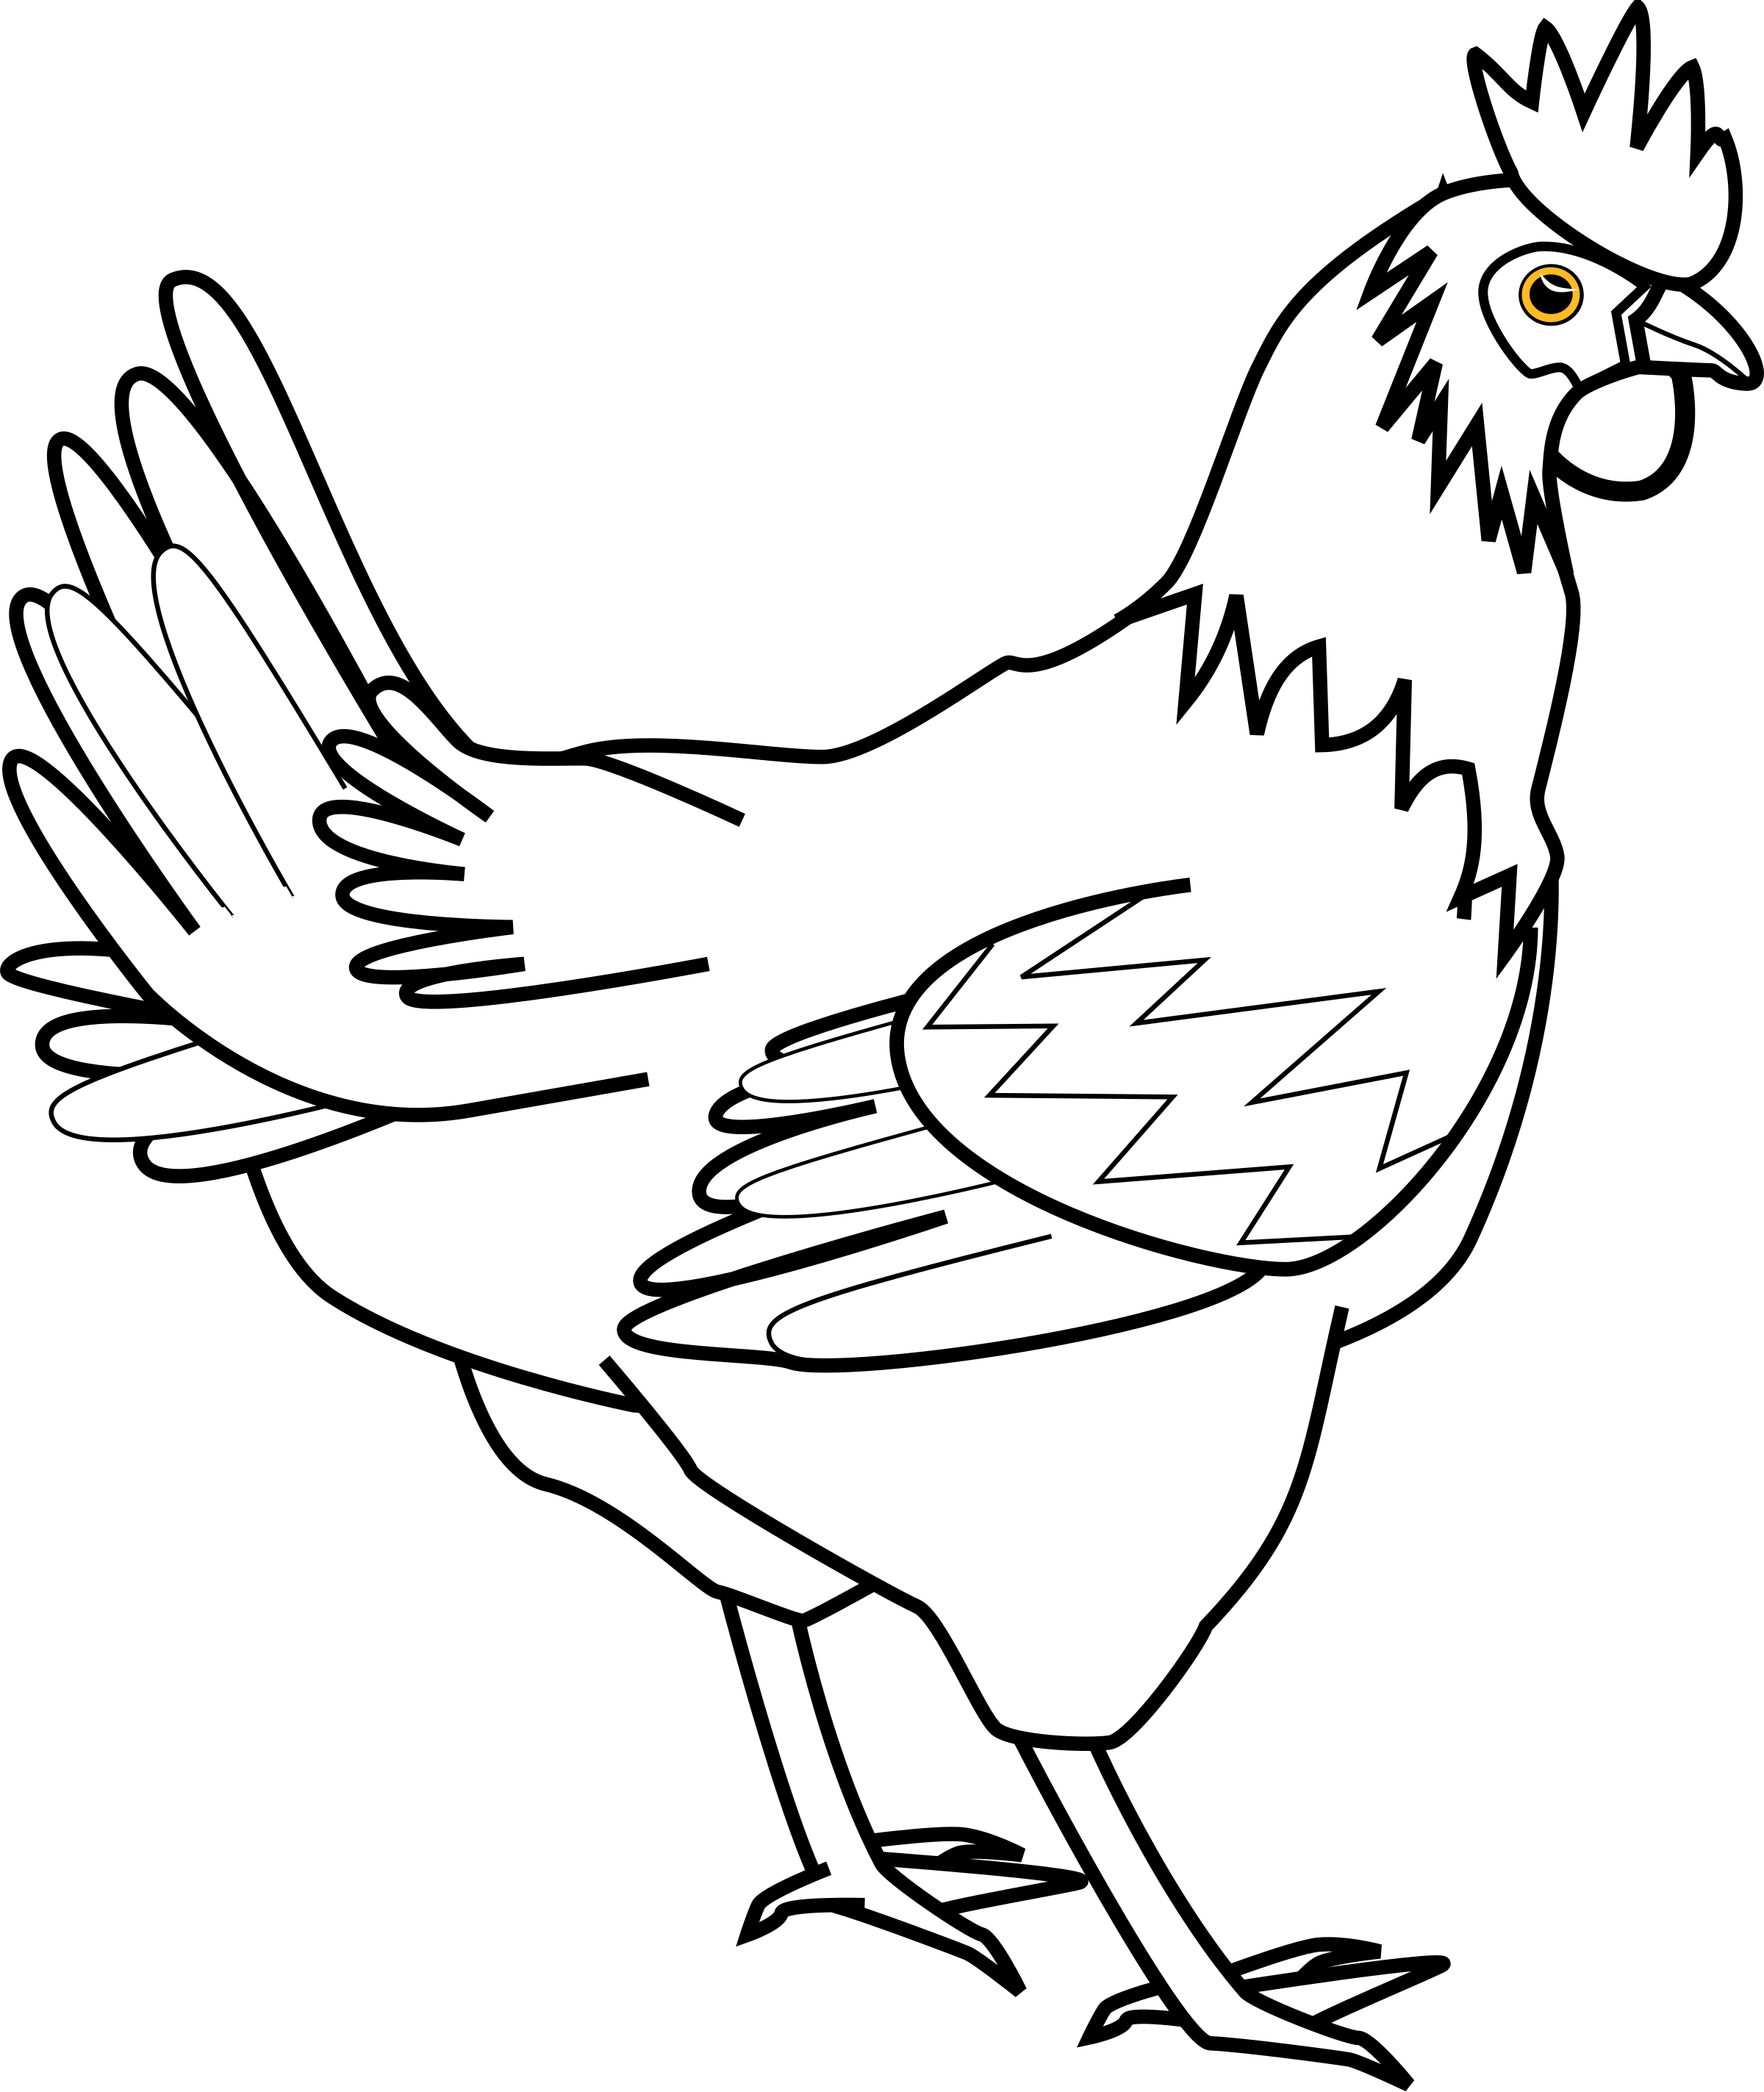 png black and white Chicken davidone big image. Chickens clipart line art.